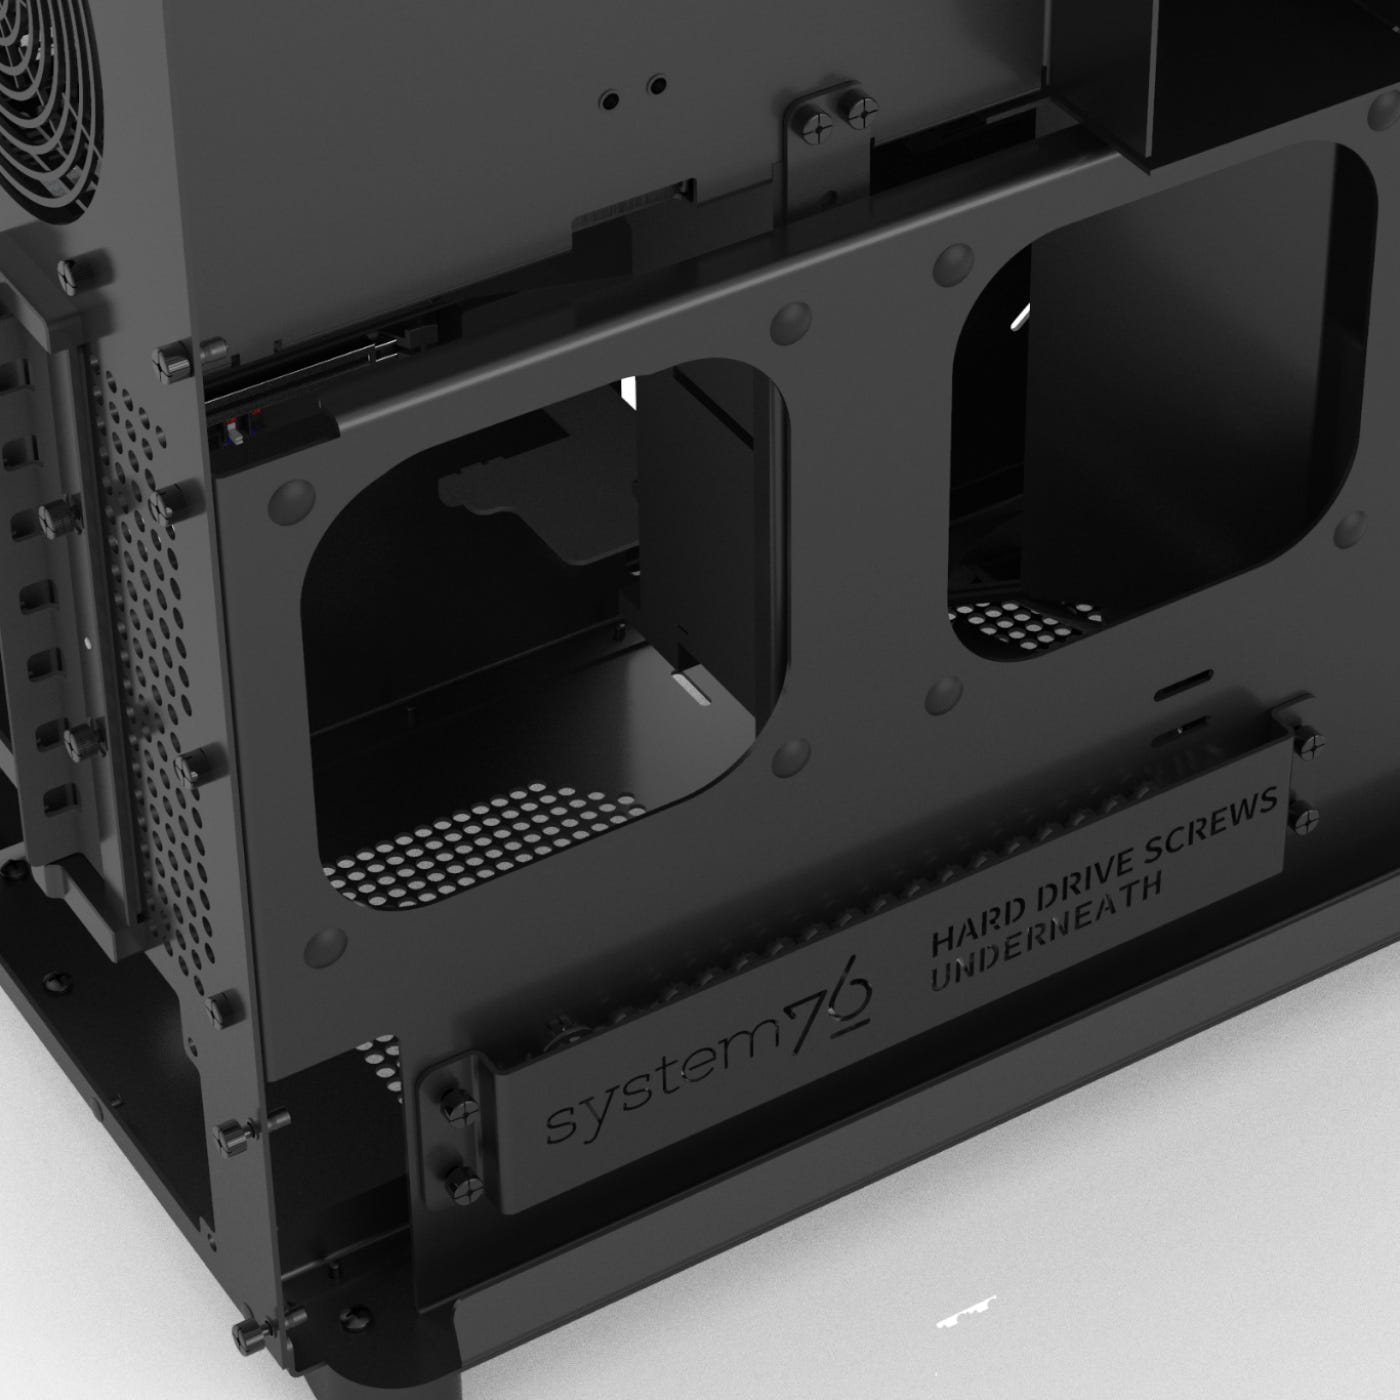 Detail of the aluminum chassis without any components installed.